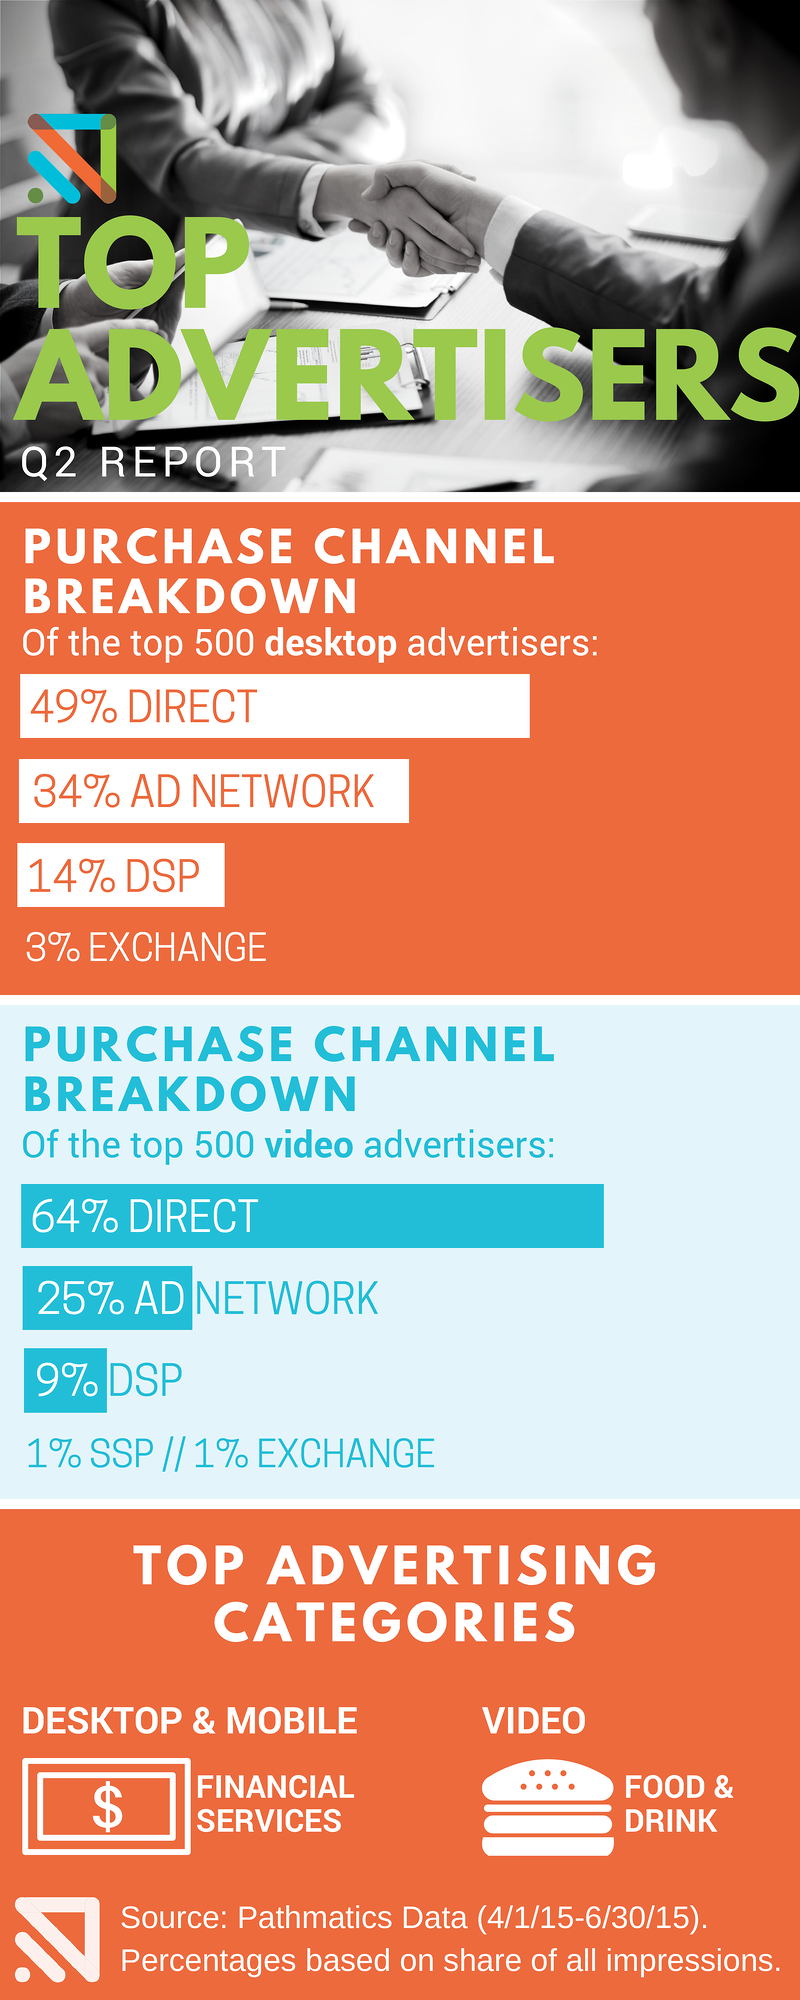 q2-Top-ADVERTISERS-infographic